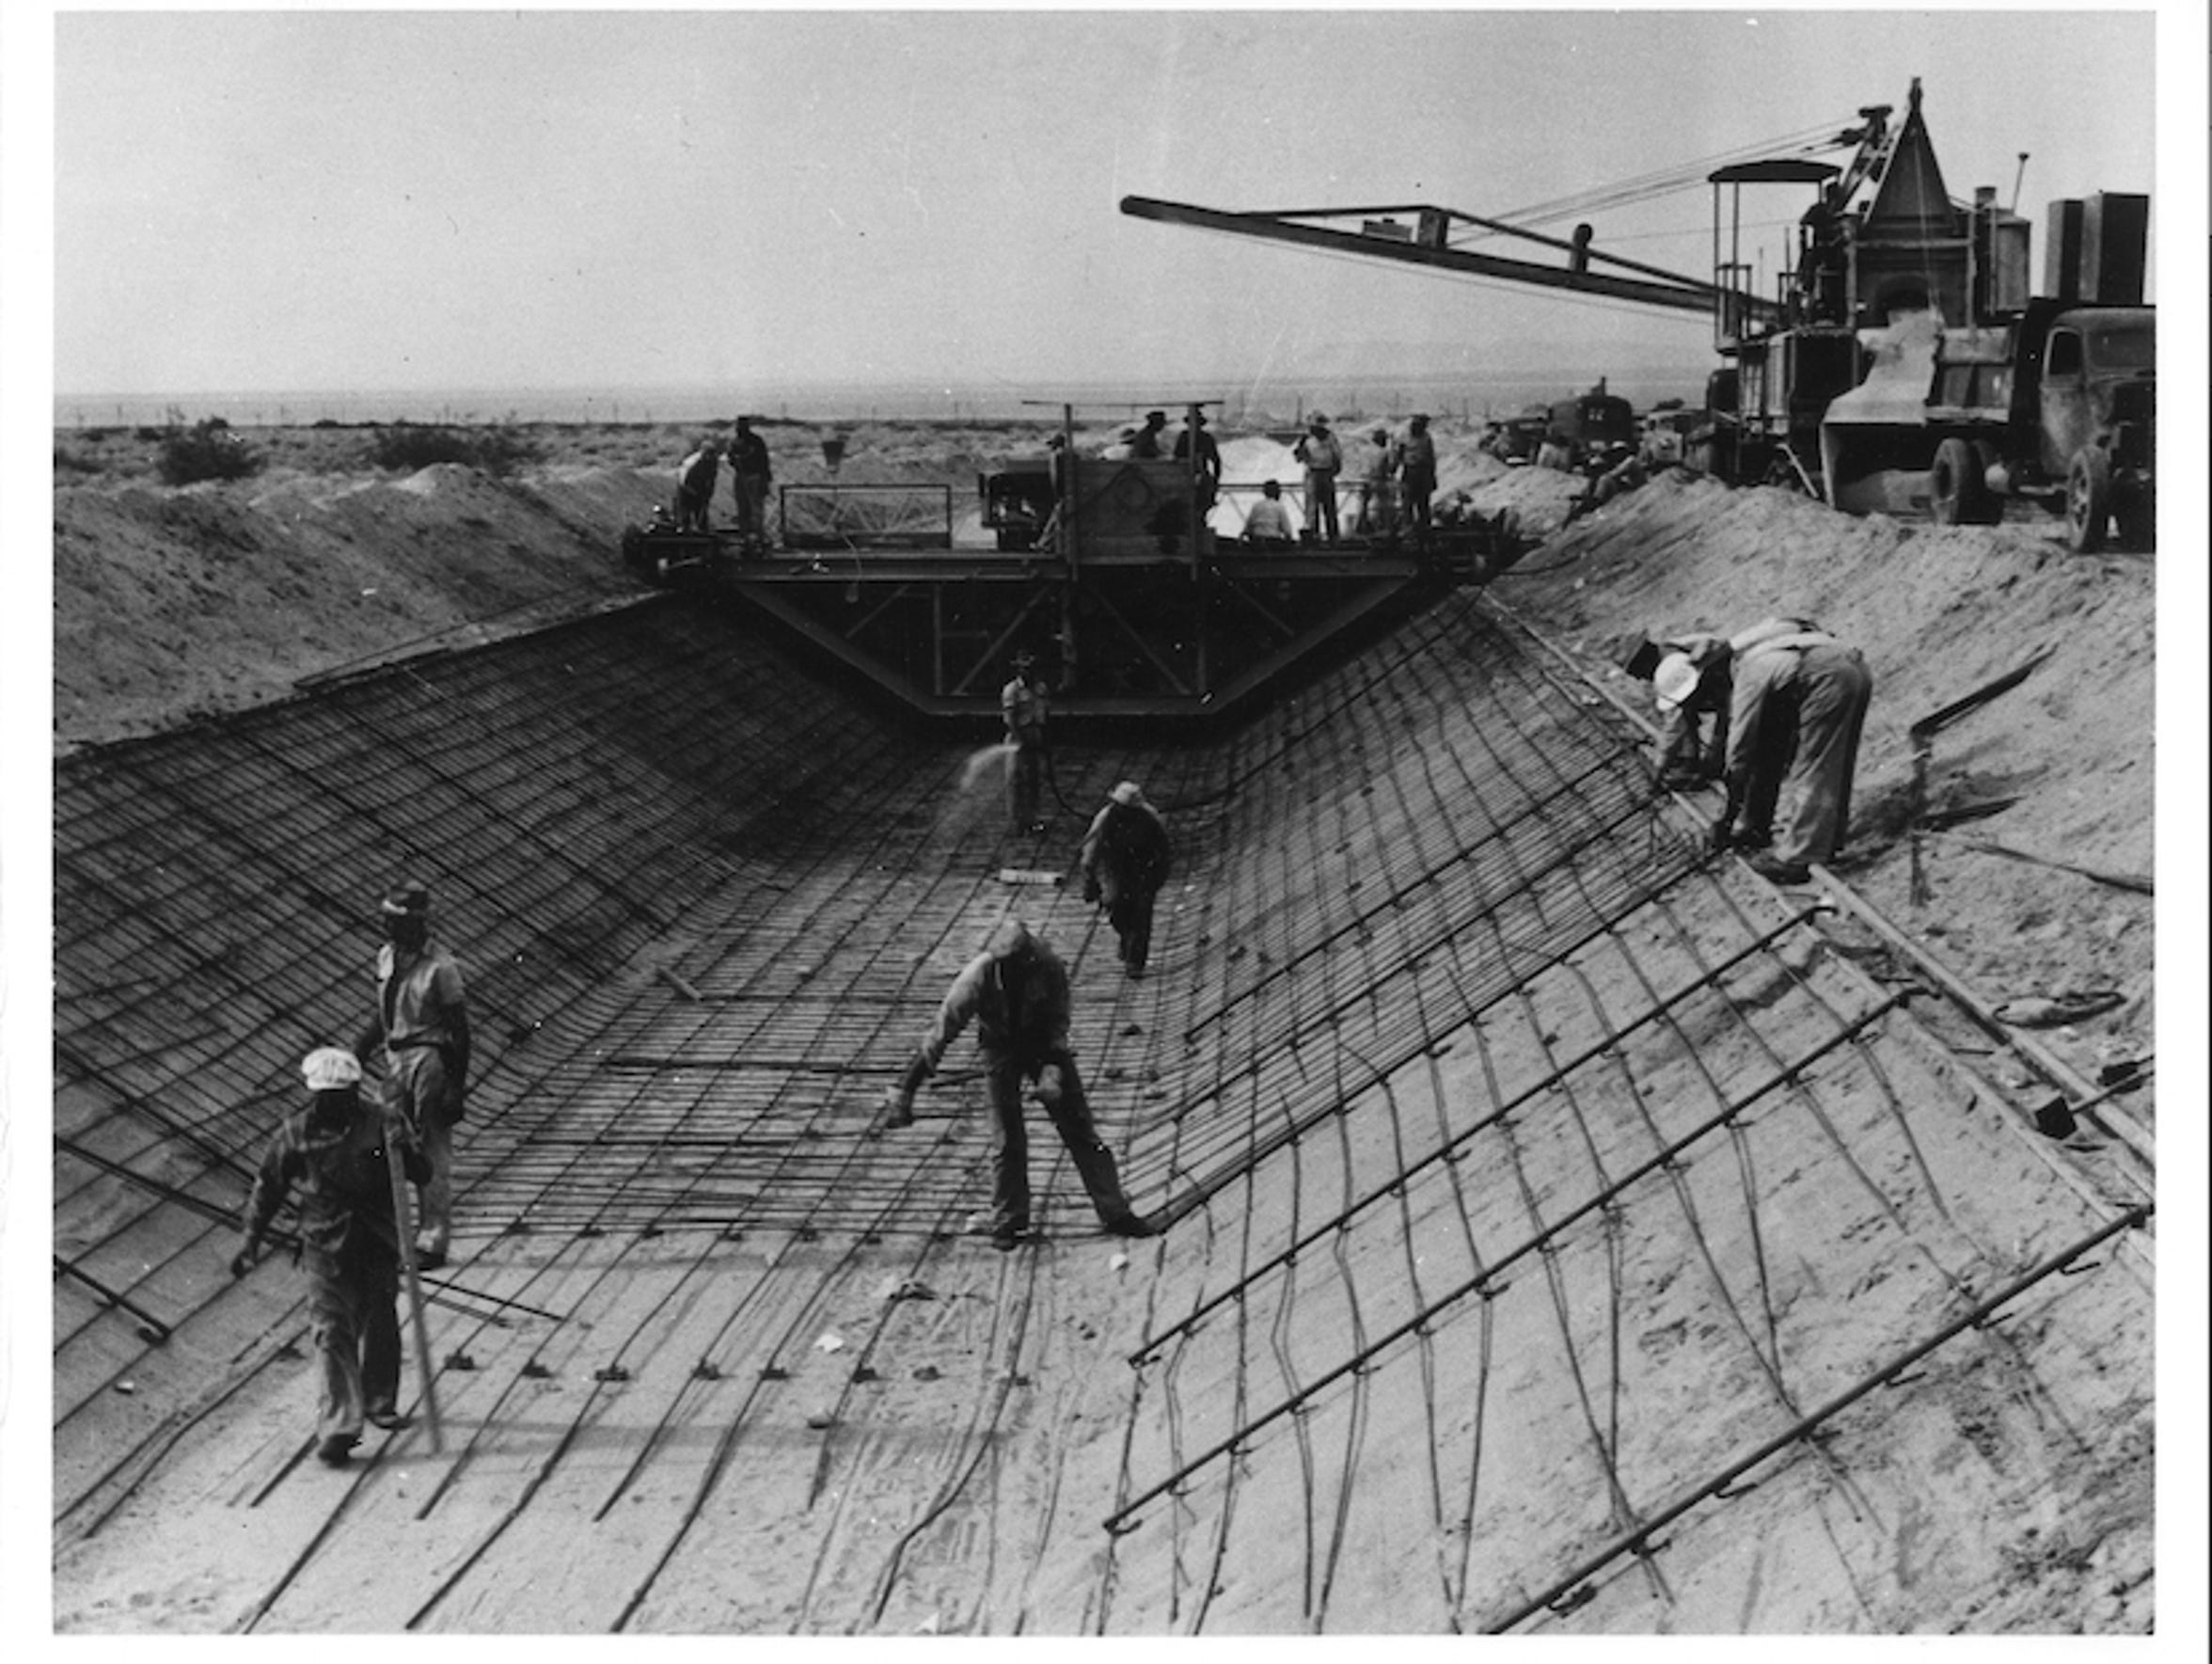 Workers build the Coachella Canal in 1946, placing